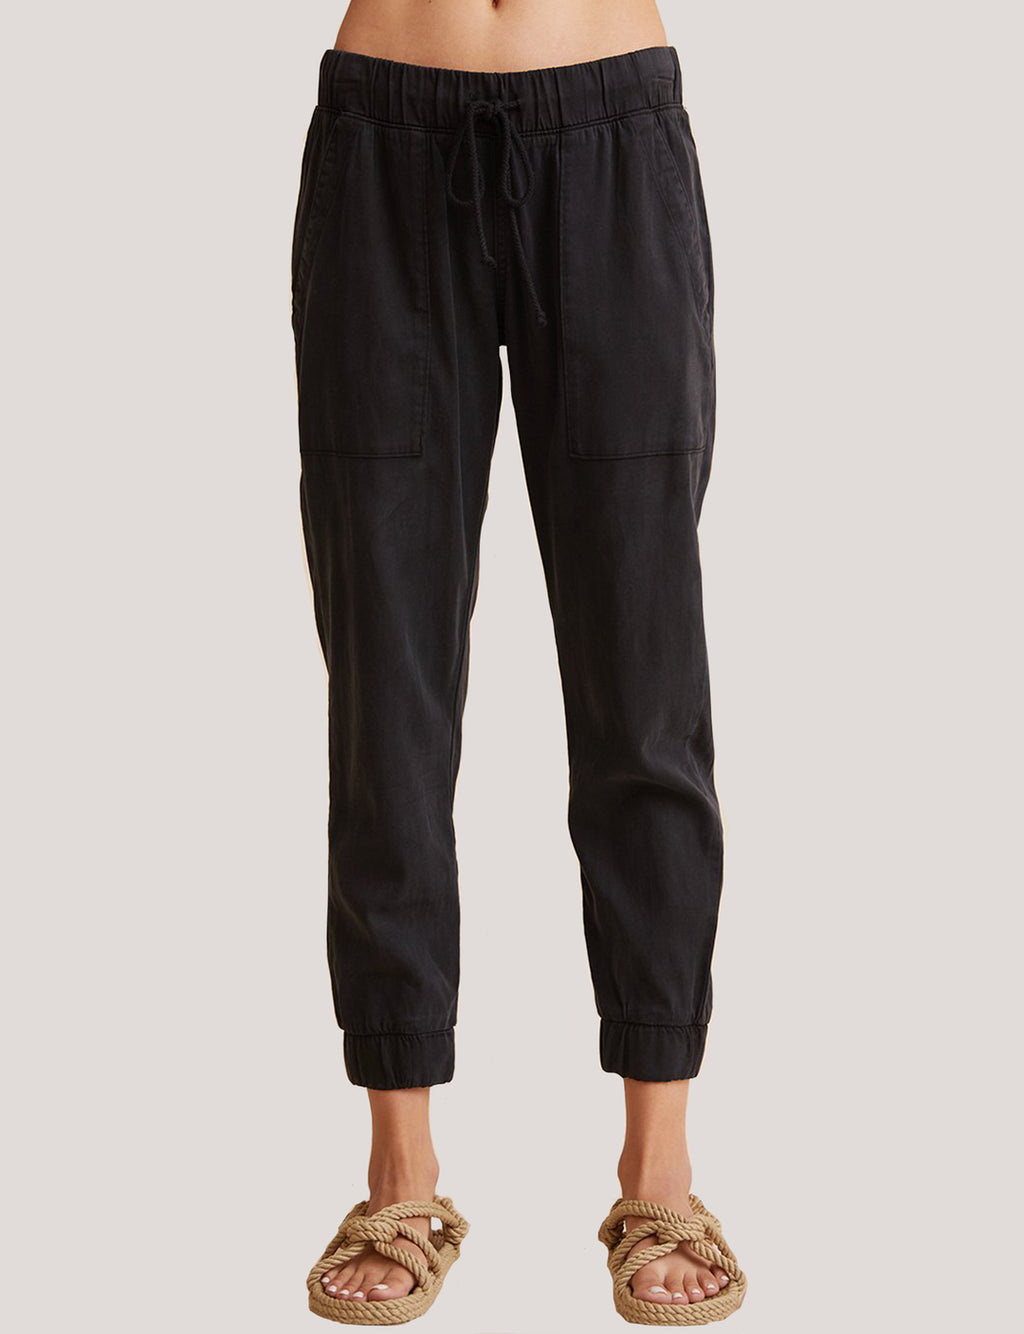 Bella Dahl Pocket Jogger in Black